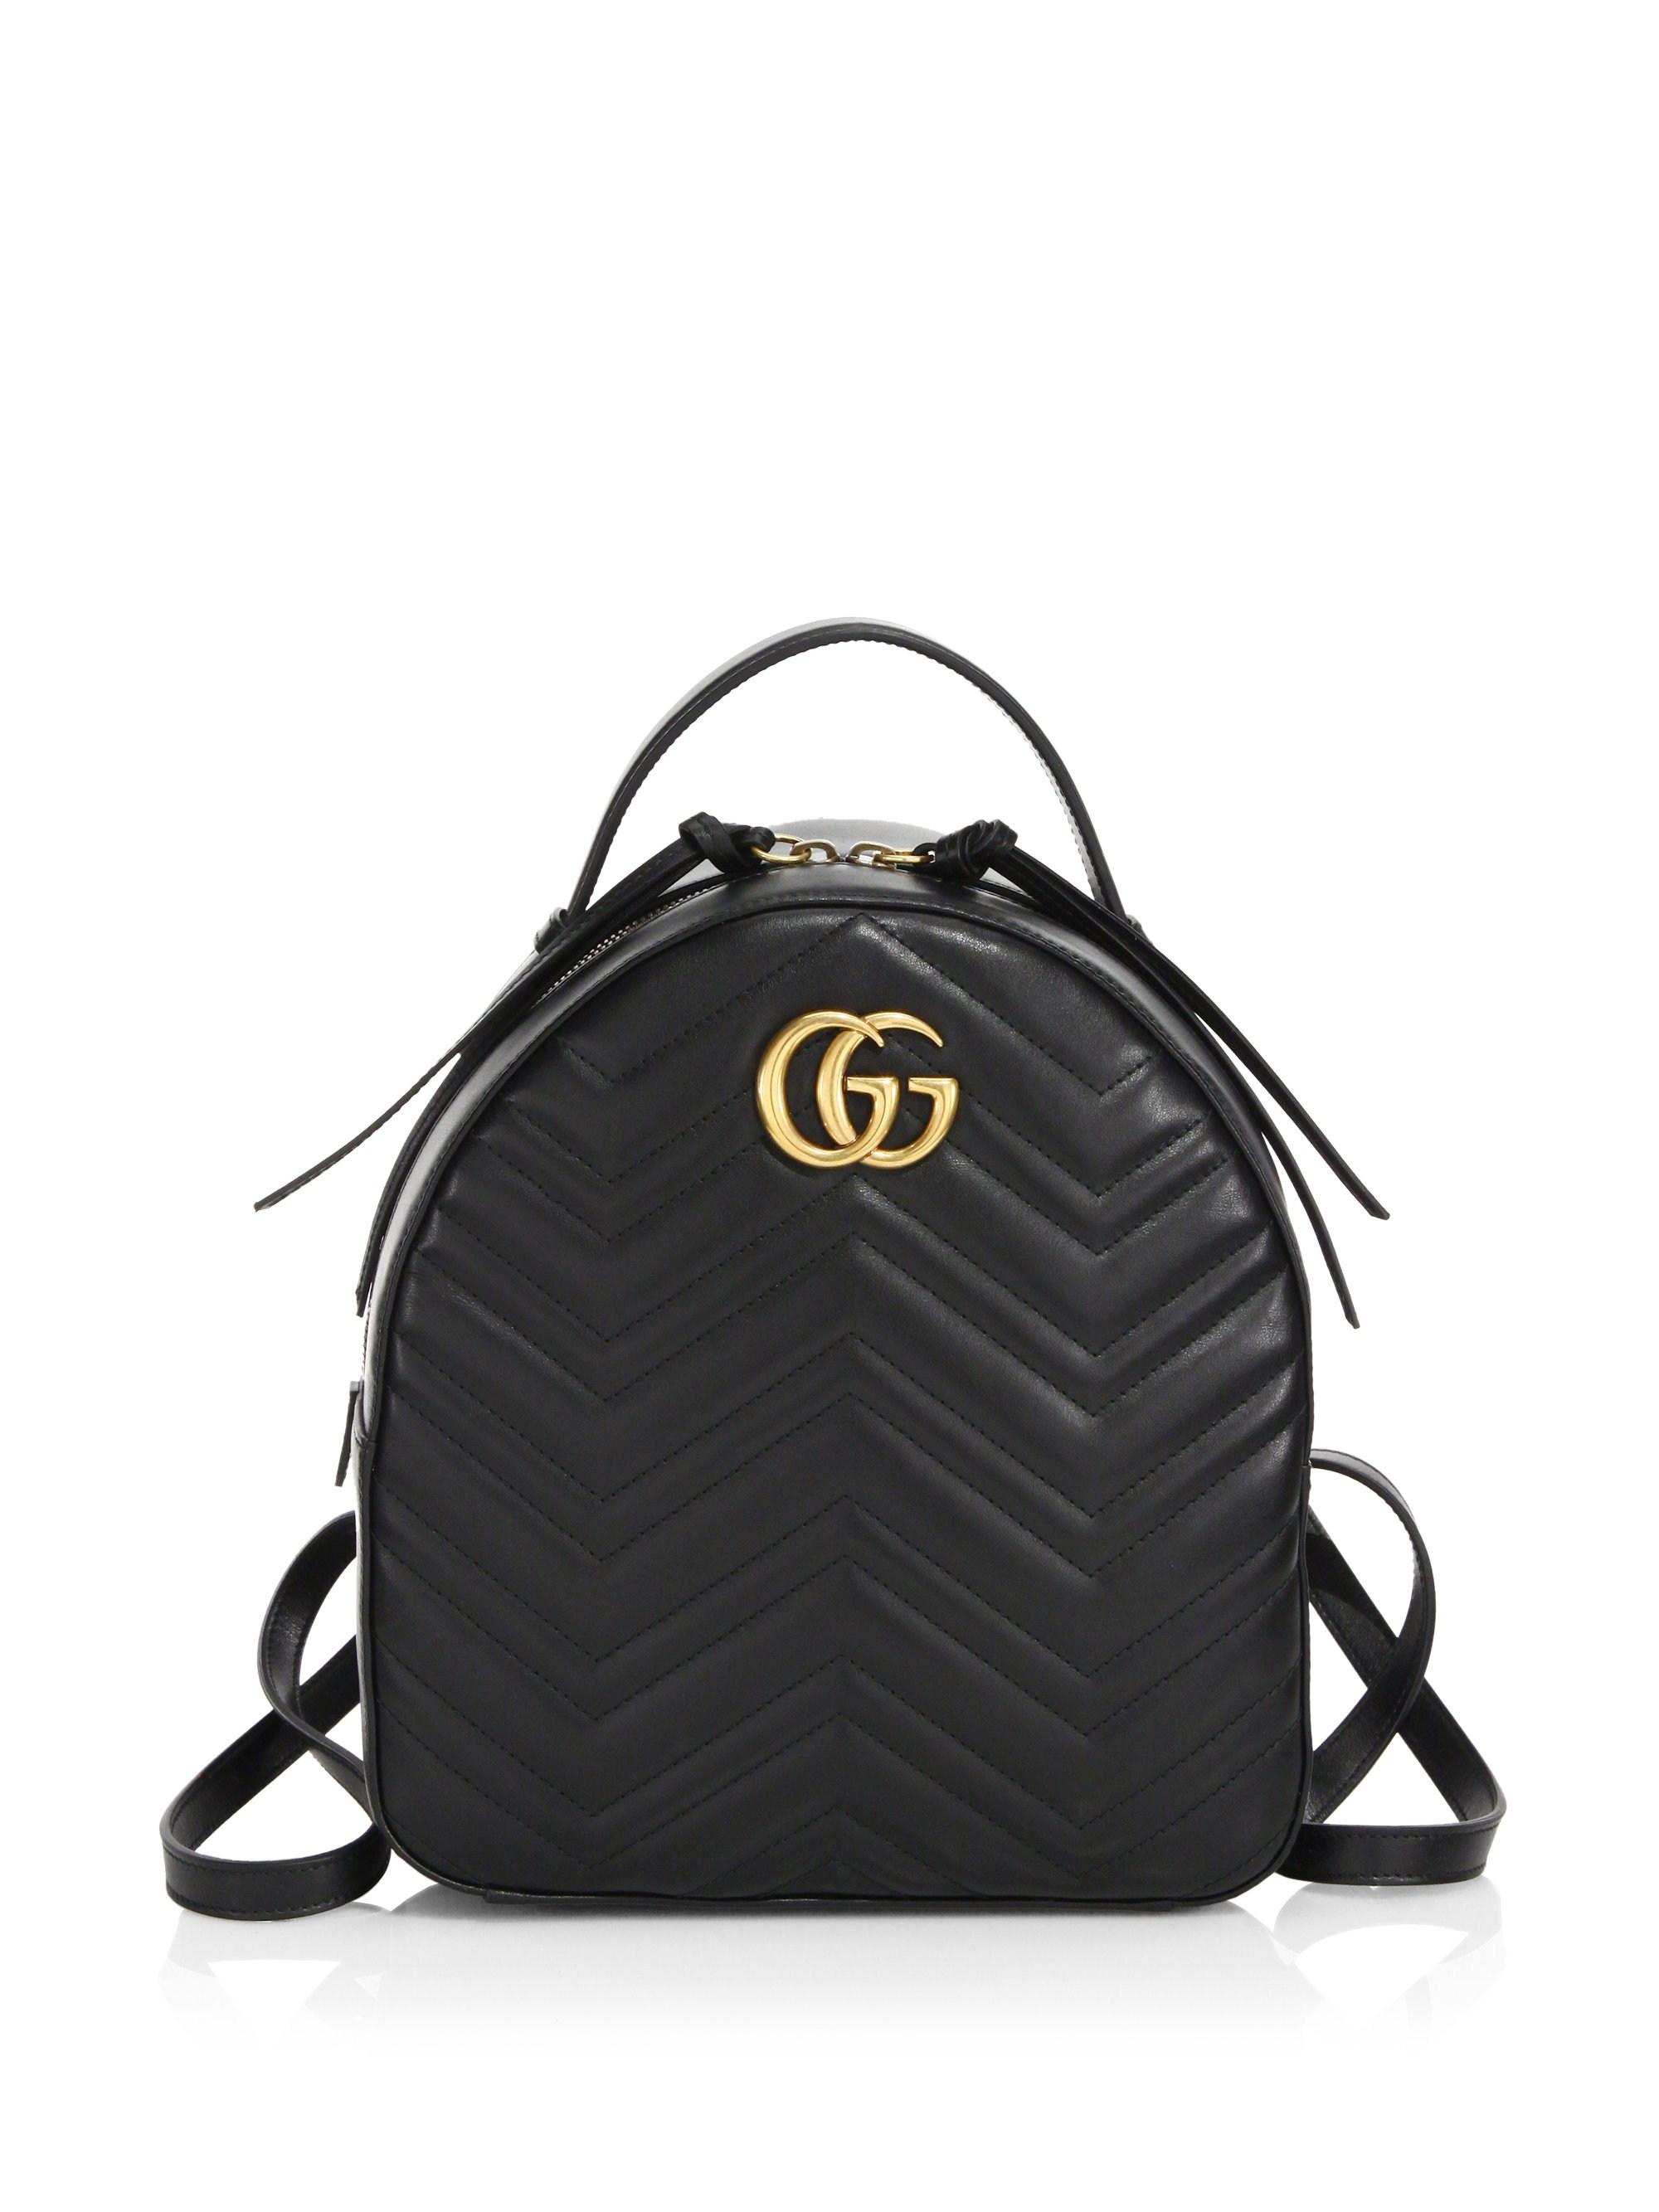 553277fd6 Gallery. Previously sold at: Saks Fifth Avenue · Women's Mini Backpack